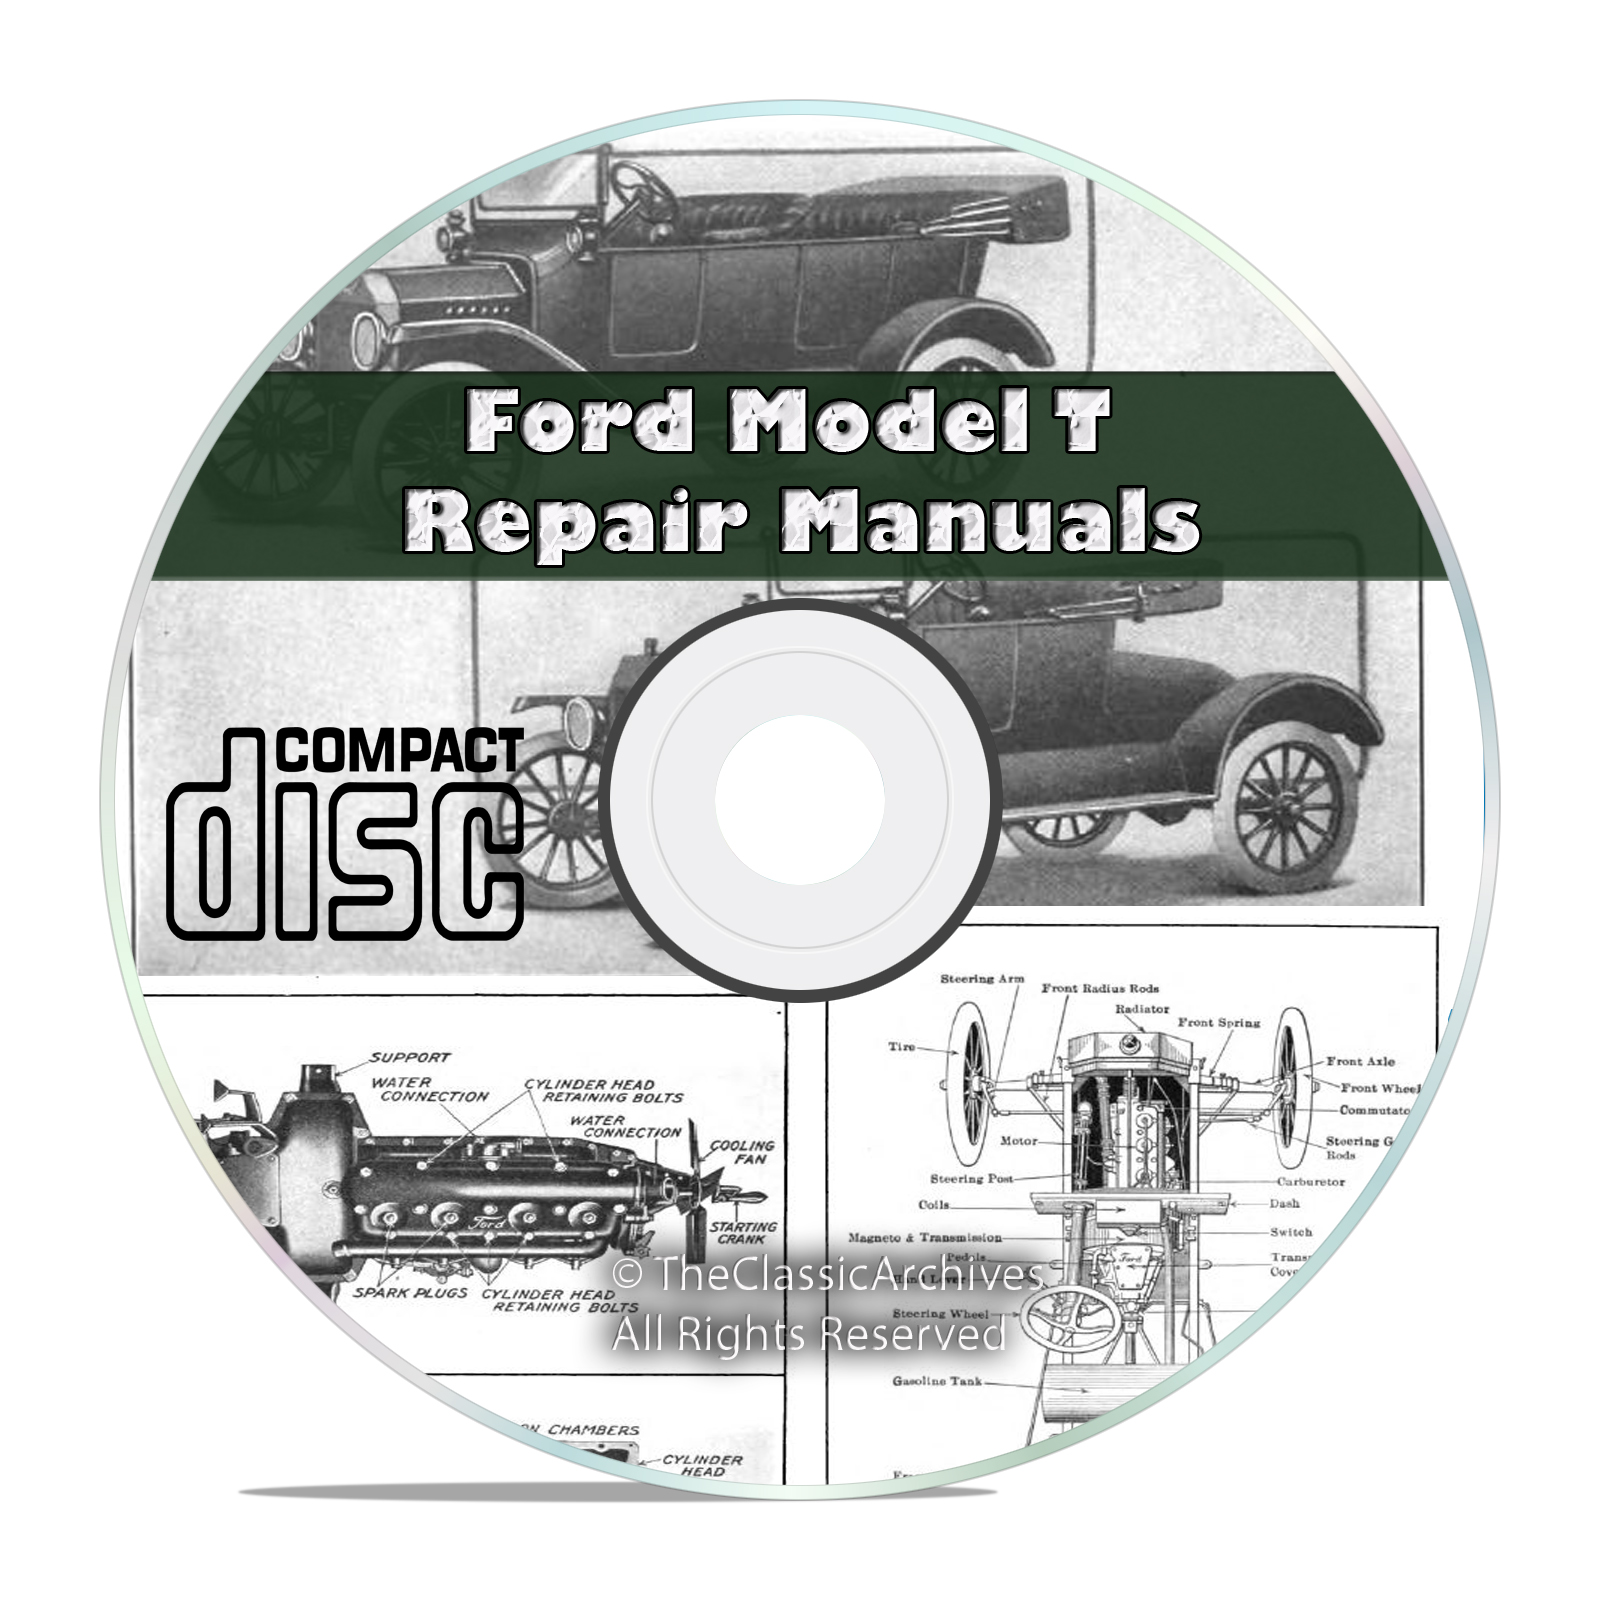 Classic Ford Model T Car Repair, Construction, Operation Manuals Books CD